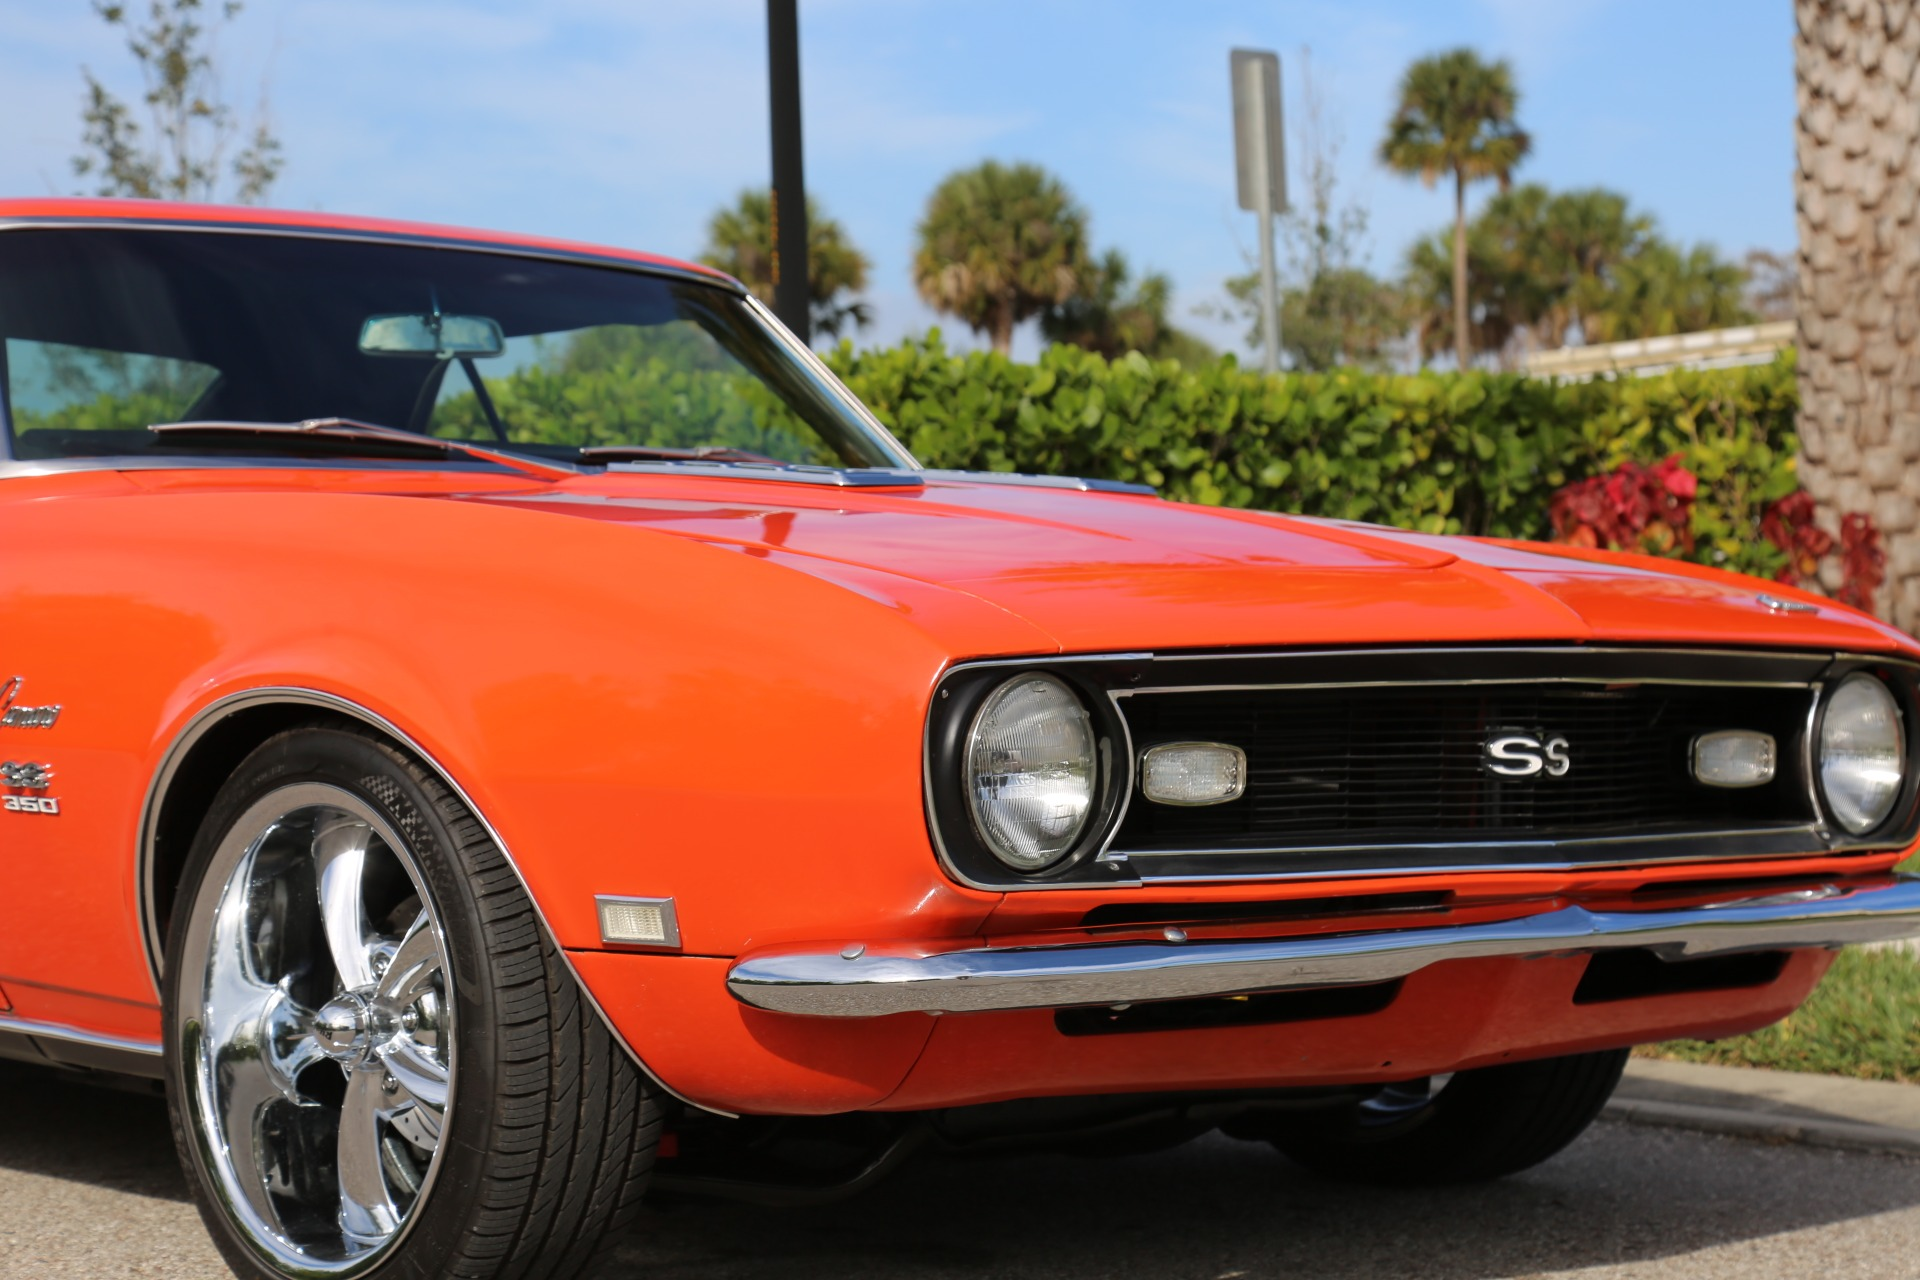 Used 1968 Chevy Camaro V8 4 Speed Manual for sale $31,000 at Muscle Cars for Sale Inc. in Fort Myers FL 33912 6